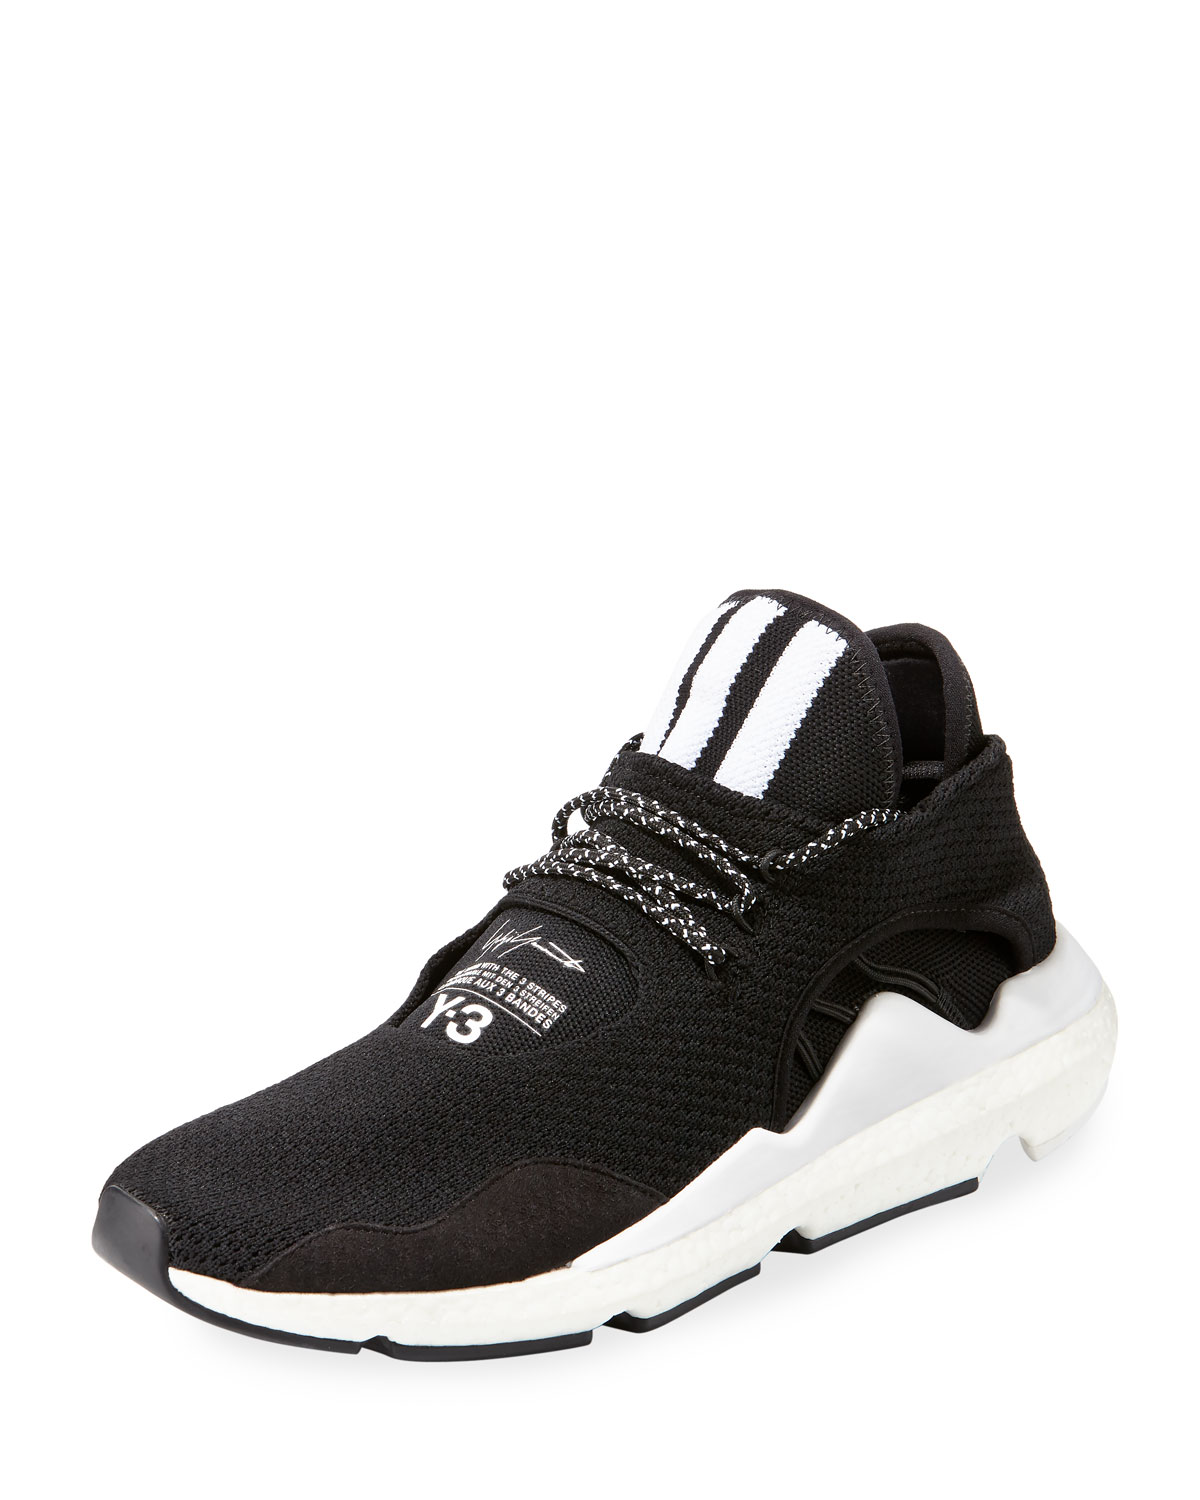 Y-3 Men s Saikou Double Primeknit Sneakers  db7d9821a